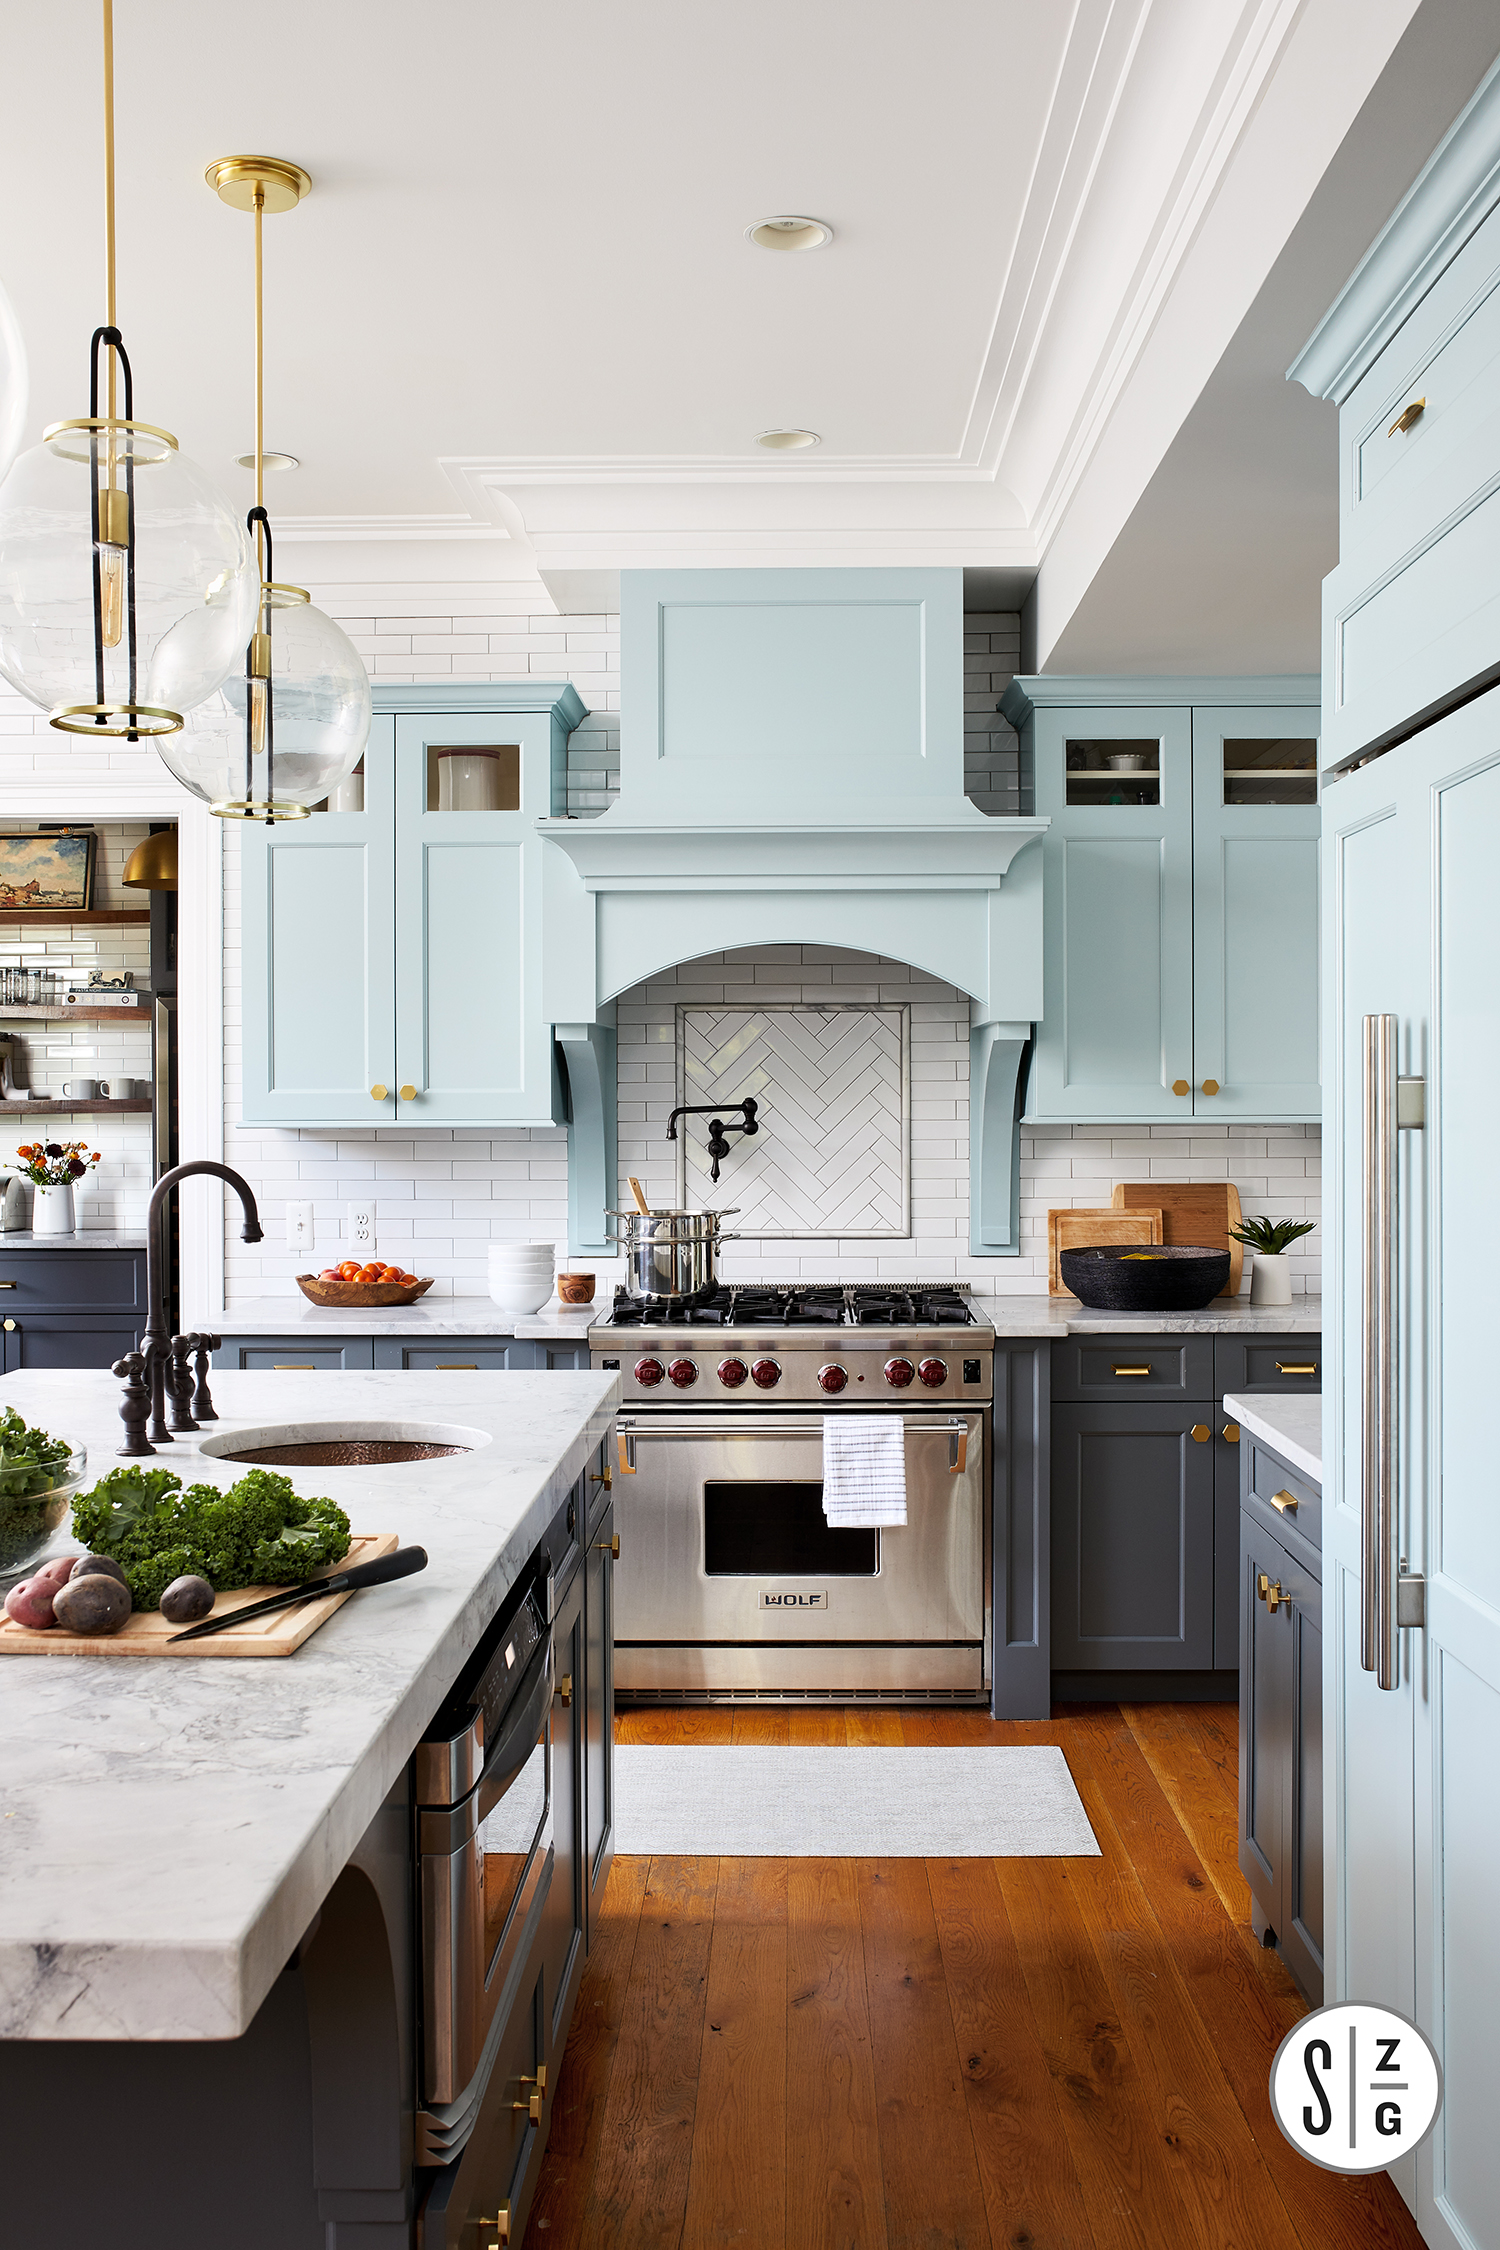 11 Common Kitchen Renovation Mistakes To Avoid